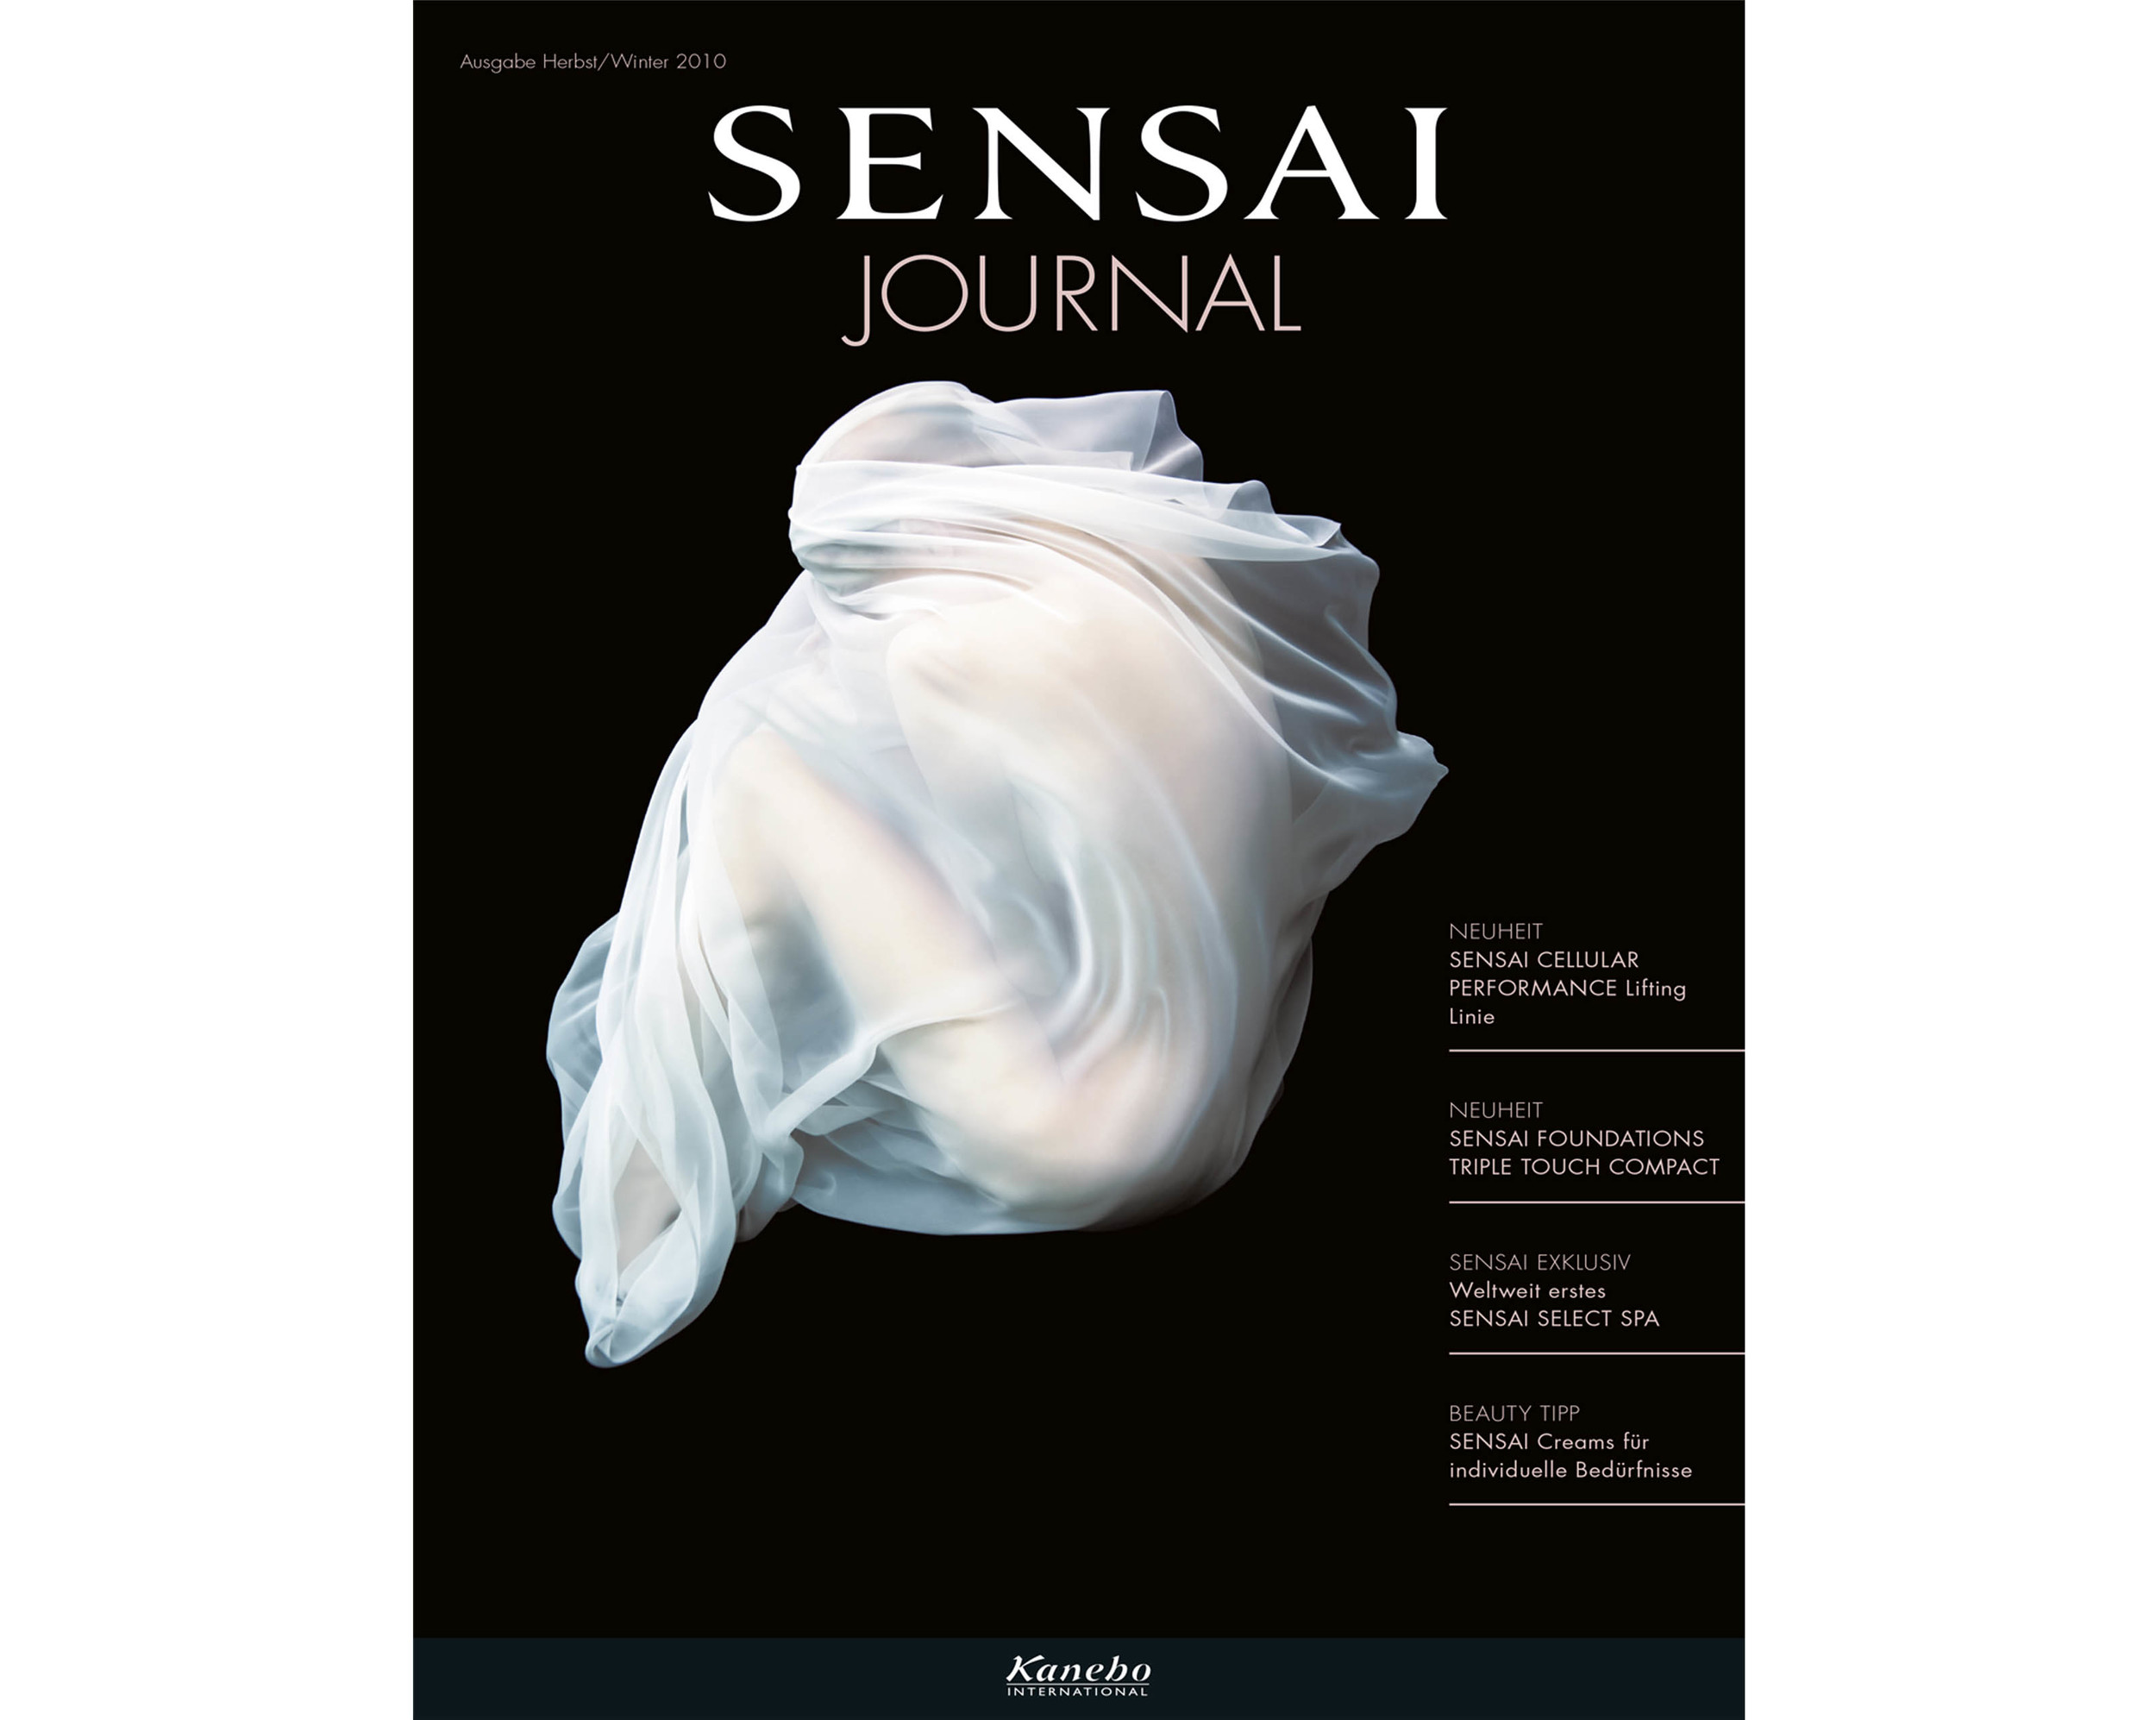 Sensai_journal_cover_03.jpg